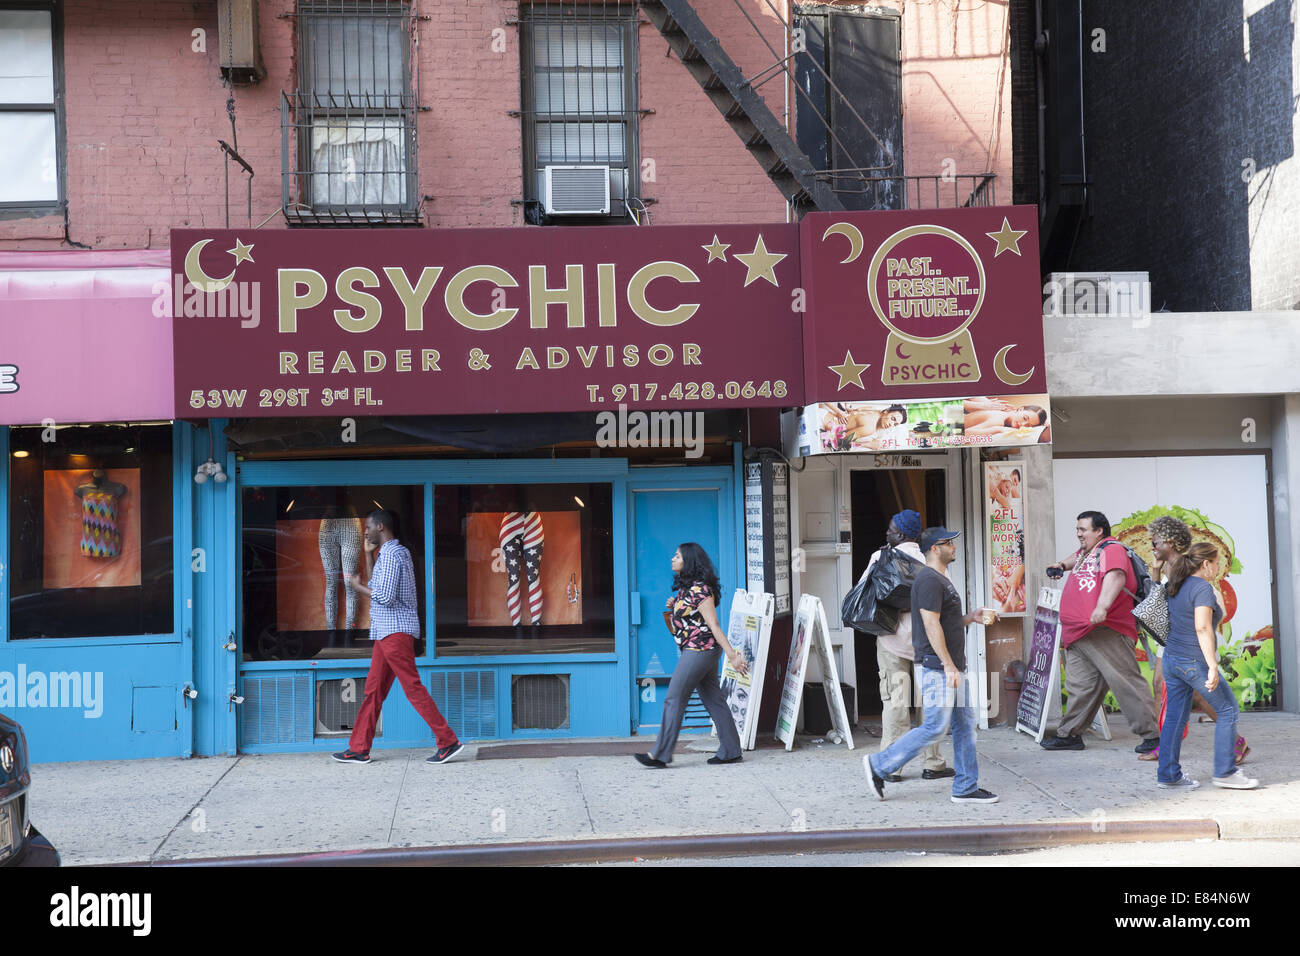 Psychic Shop Stock Photos & Psychic Shop Stock Images - Alamy